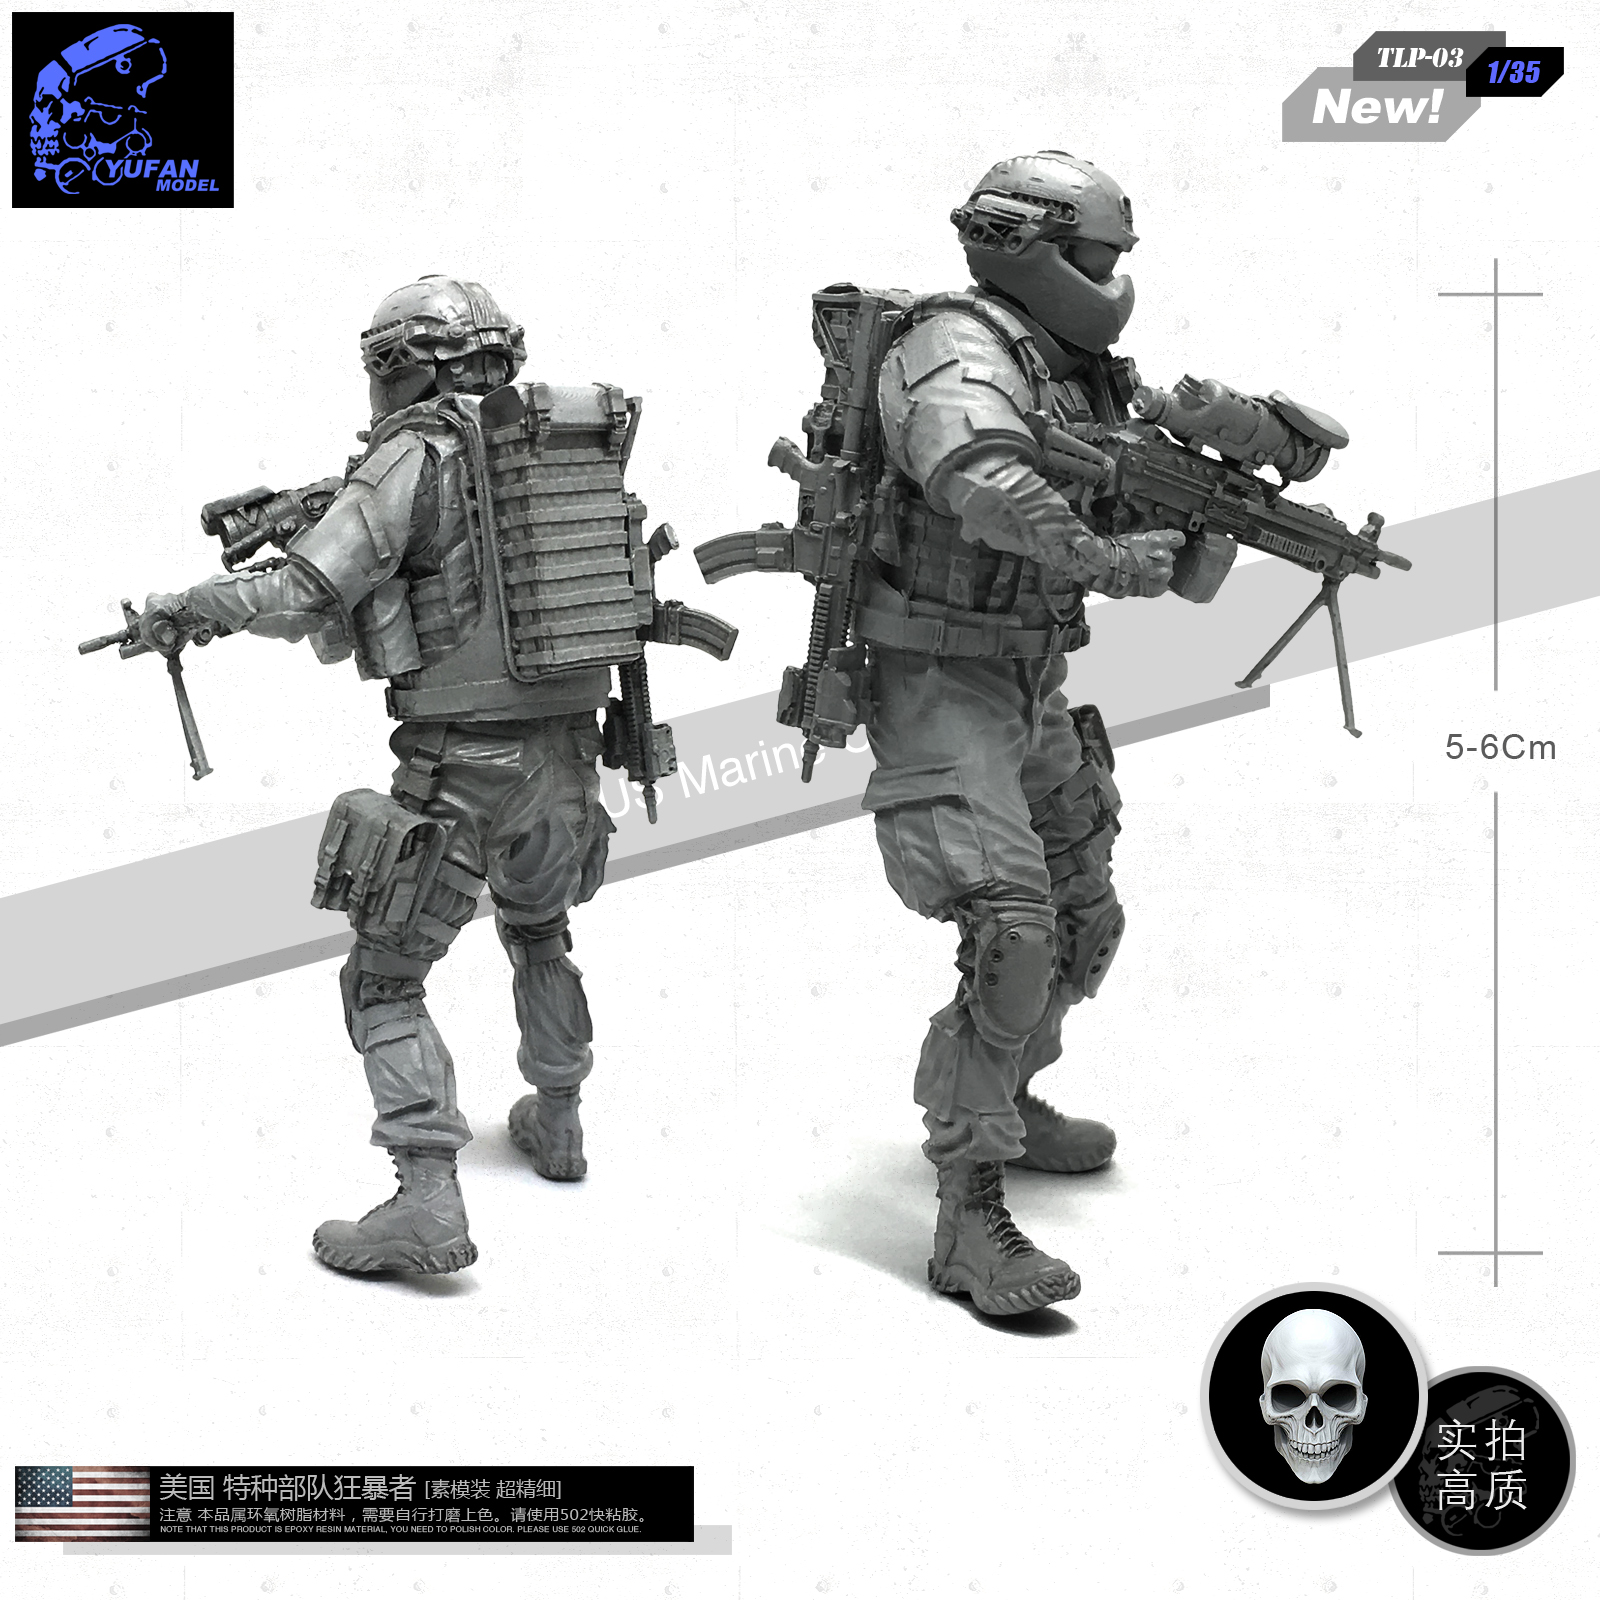 1/35 U.s. Special Forces Berserker C Resin Soldier Model Tlp-03 Beneficial To Essential Medulla